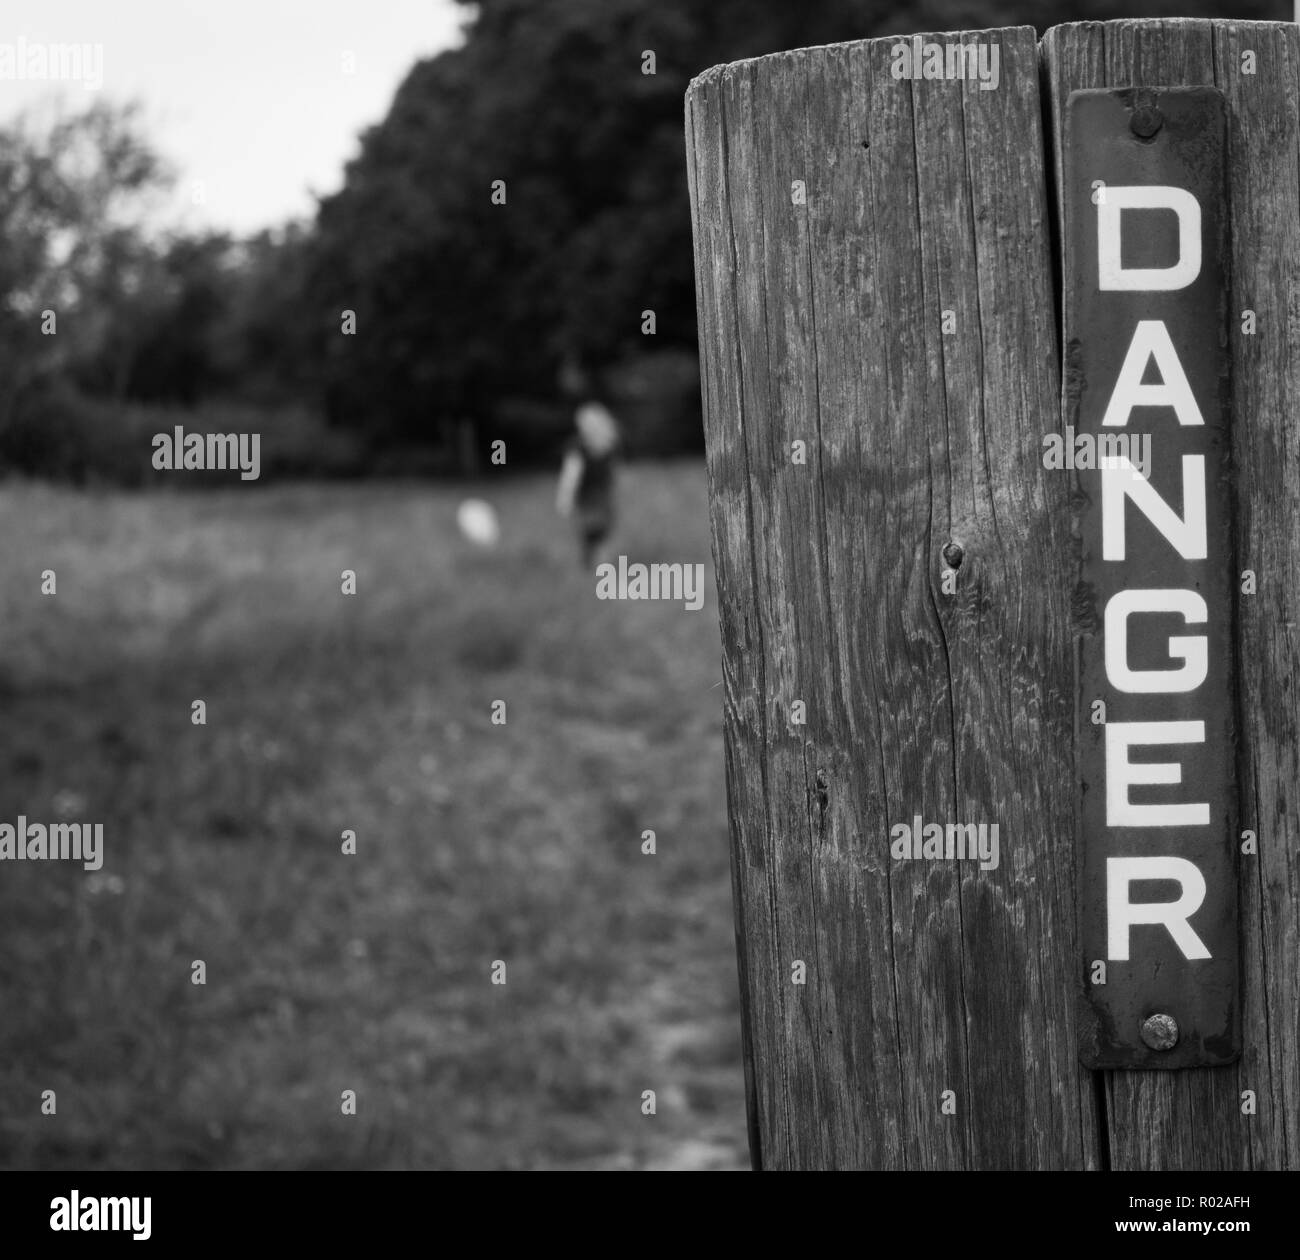 Metal danger sign on wooden gate post with blurred figure in background - Stock Image